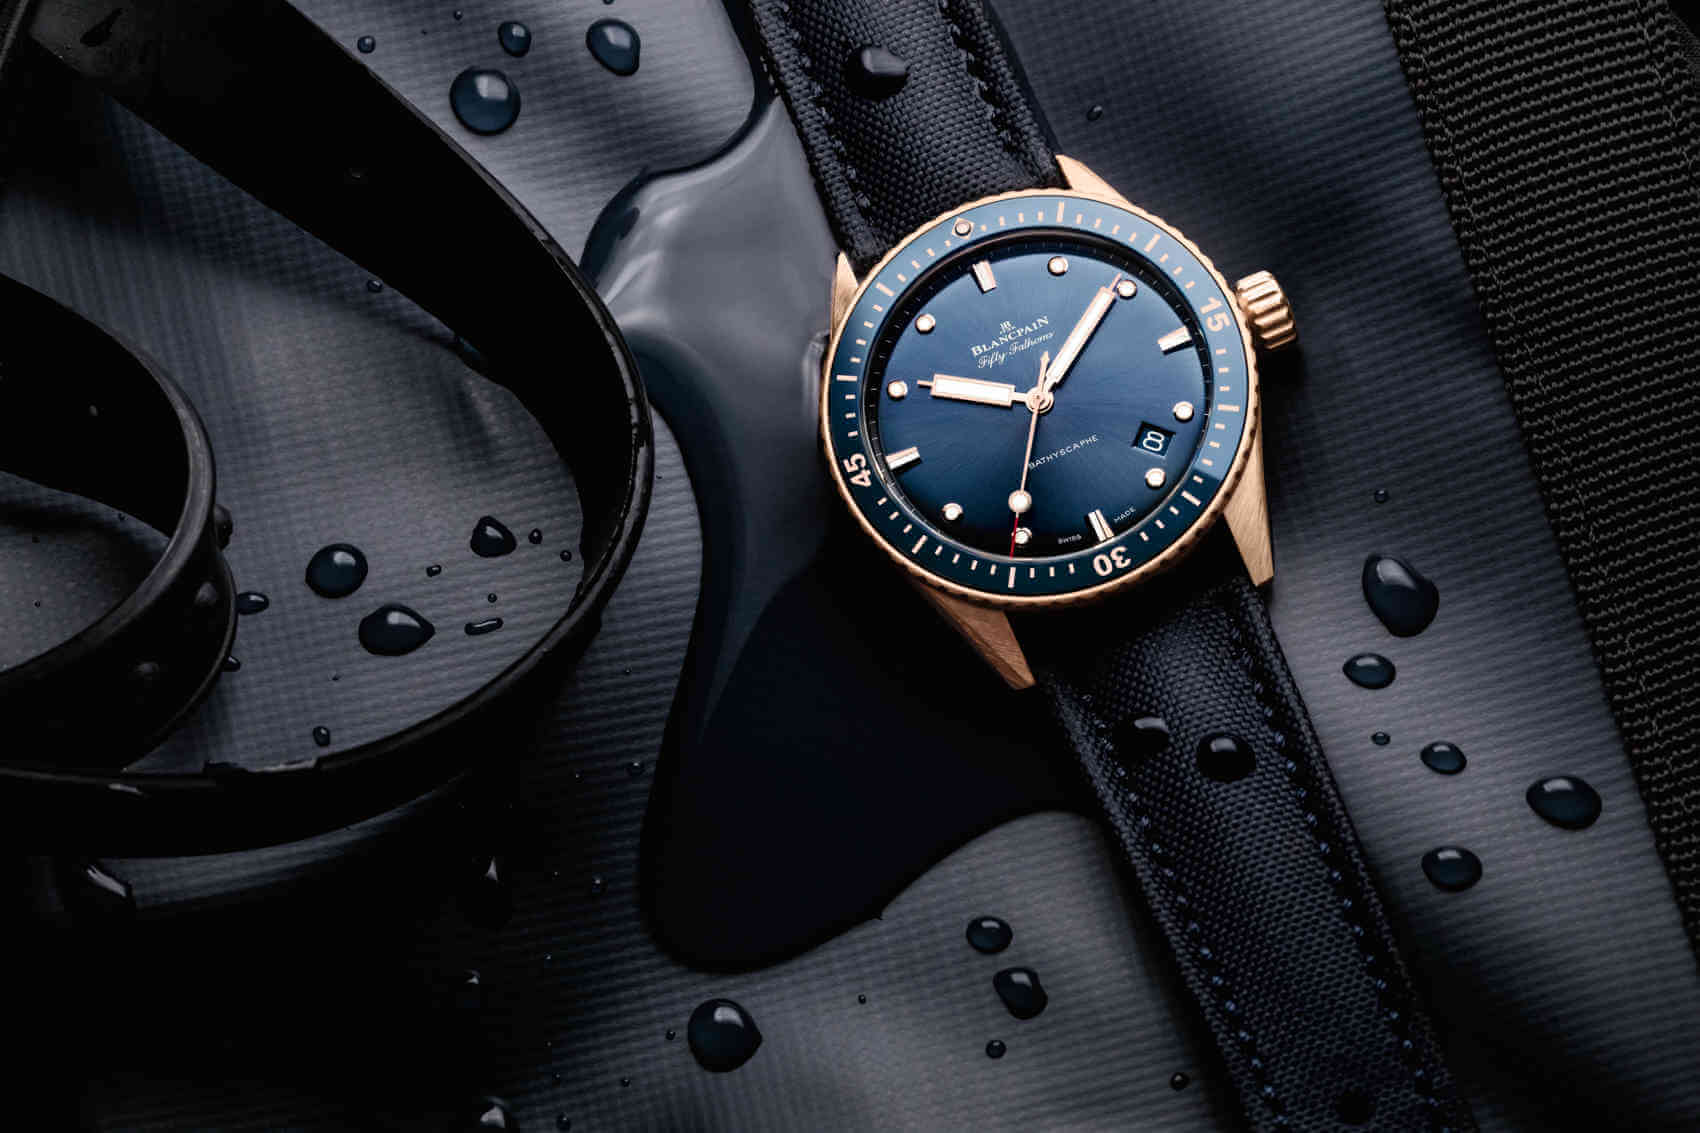 Blancpain Fifty Fathoms Bathyscaphe Sedna Gold land